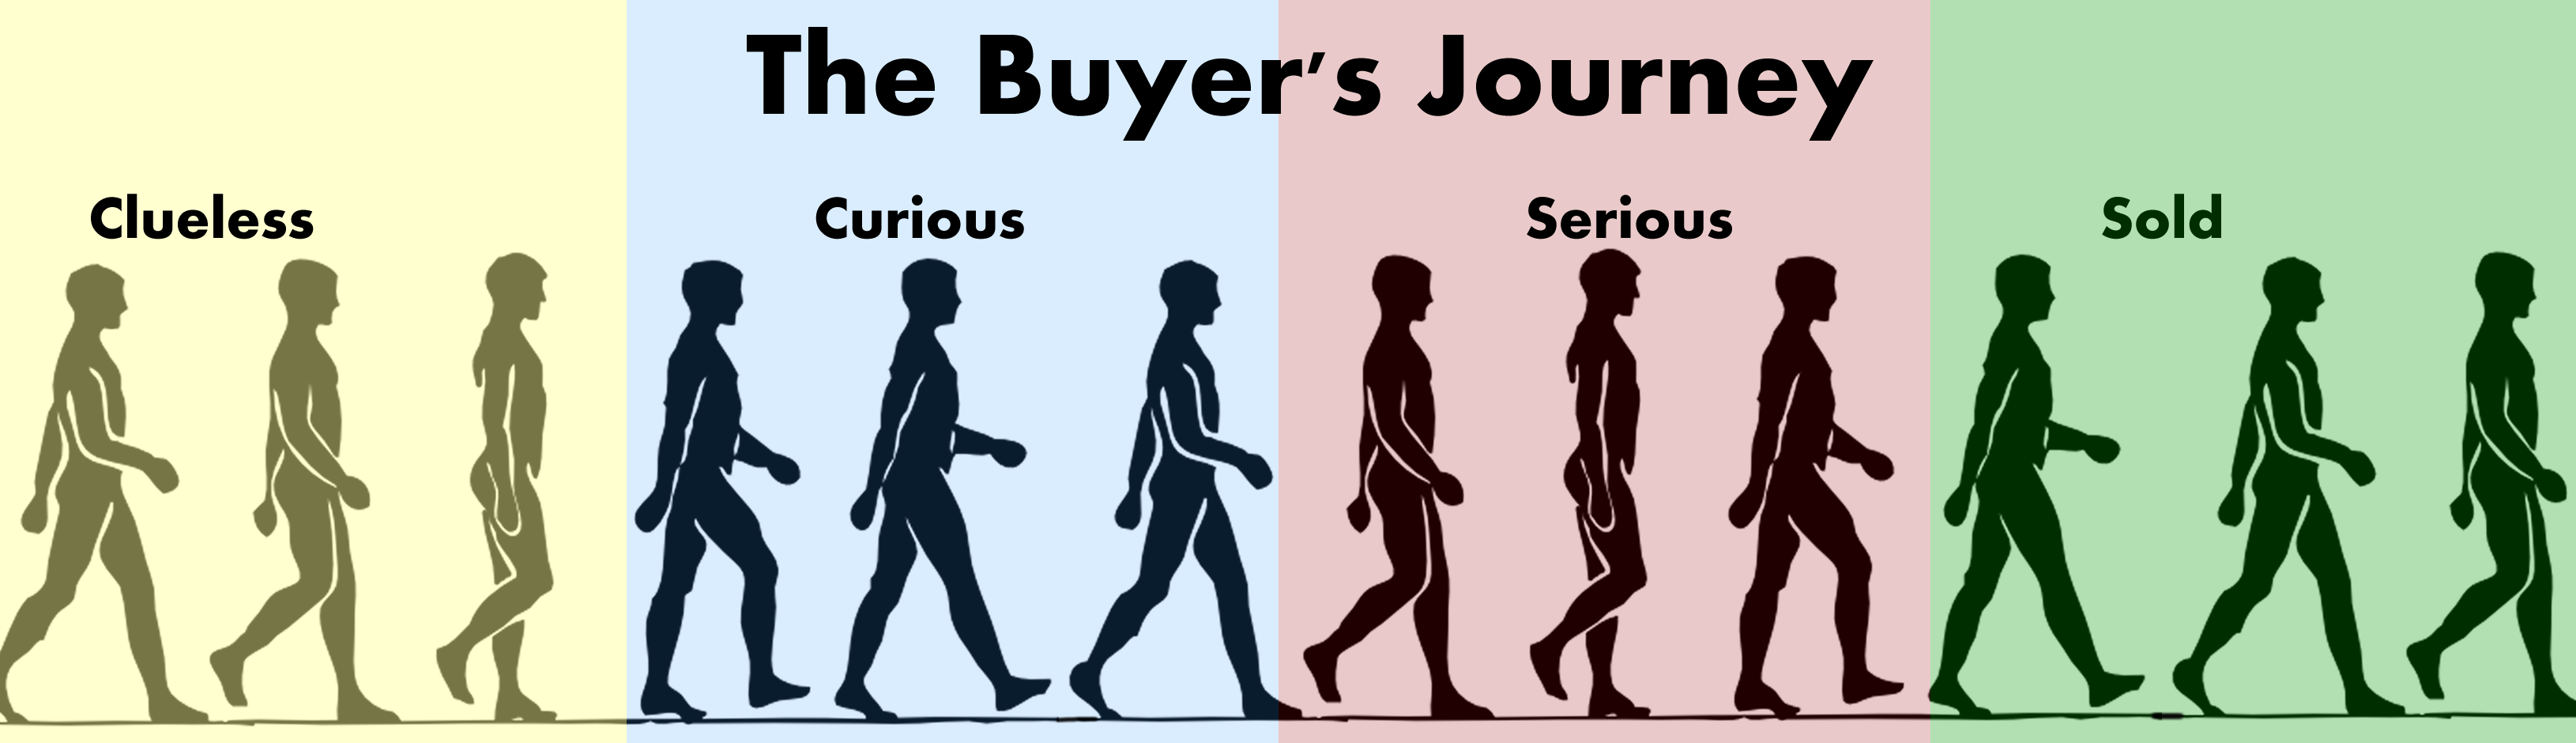 Buyers-Journey-long